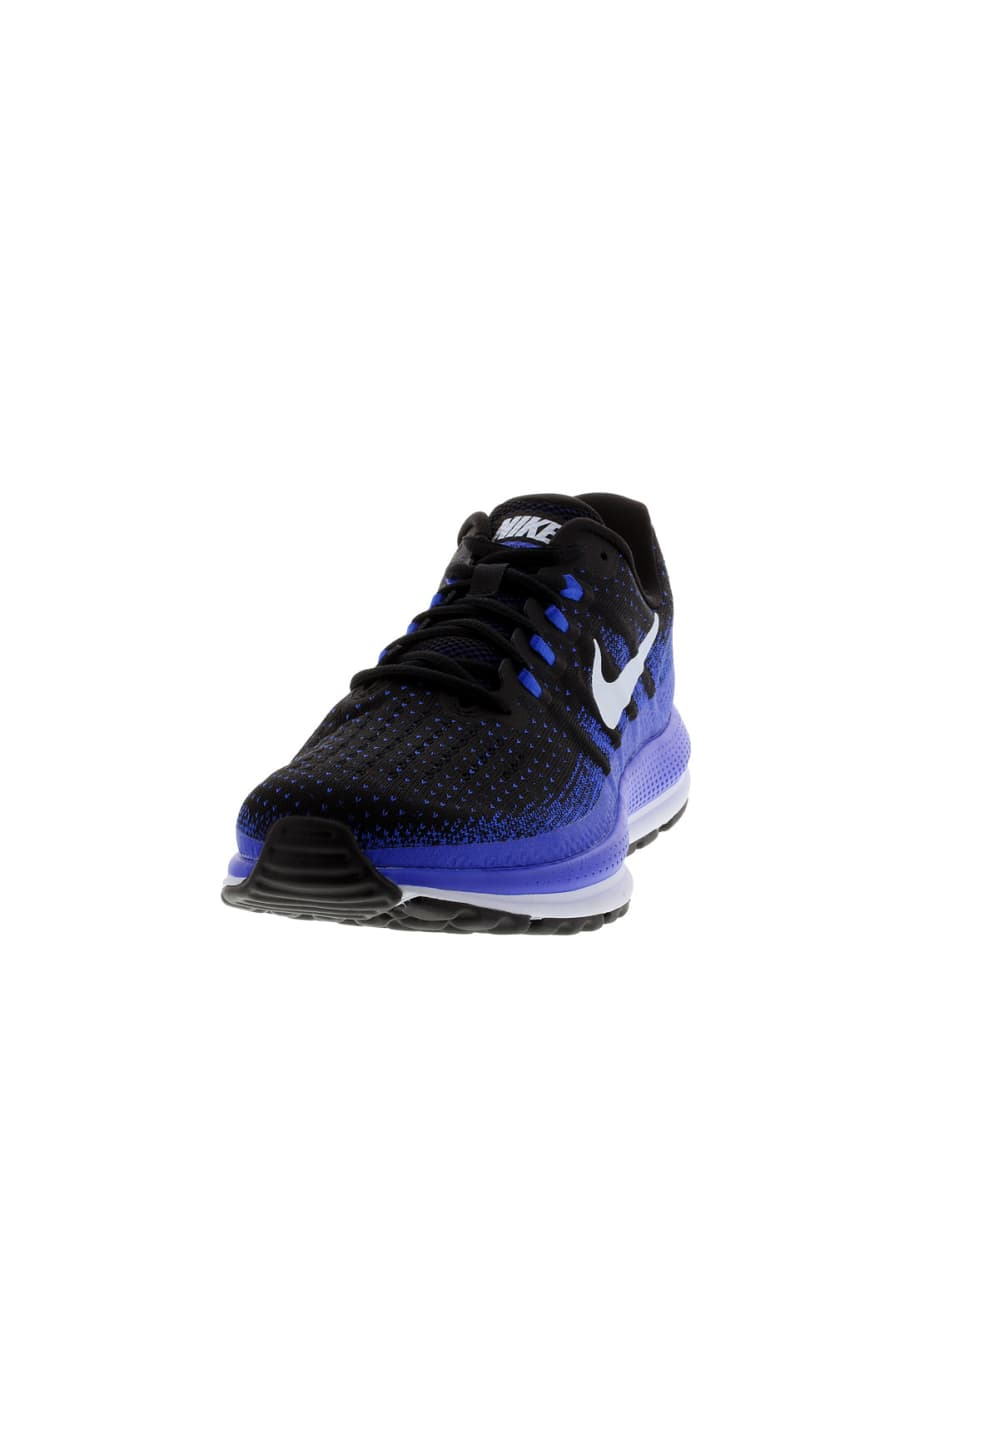 the latest ddae4 fc337 Nike Air Zoom Vomero 13 - Running shoes for Men - Blue